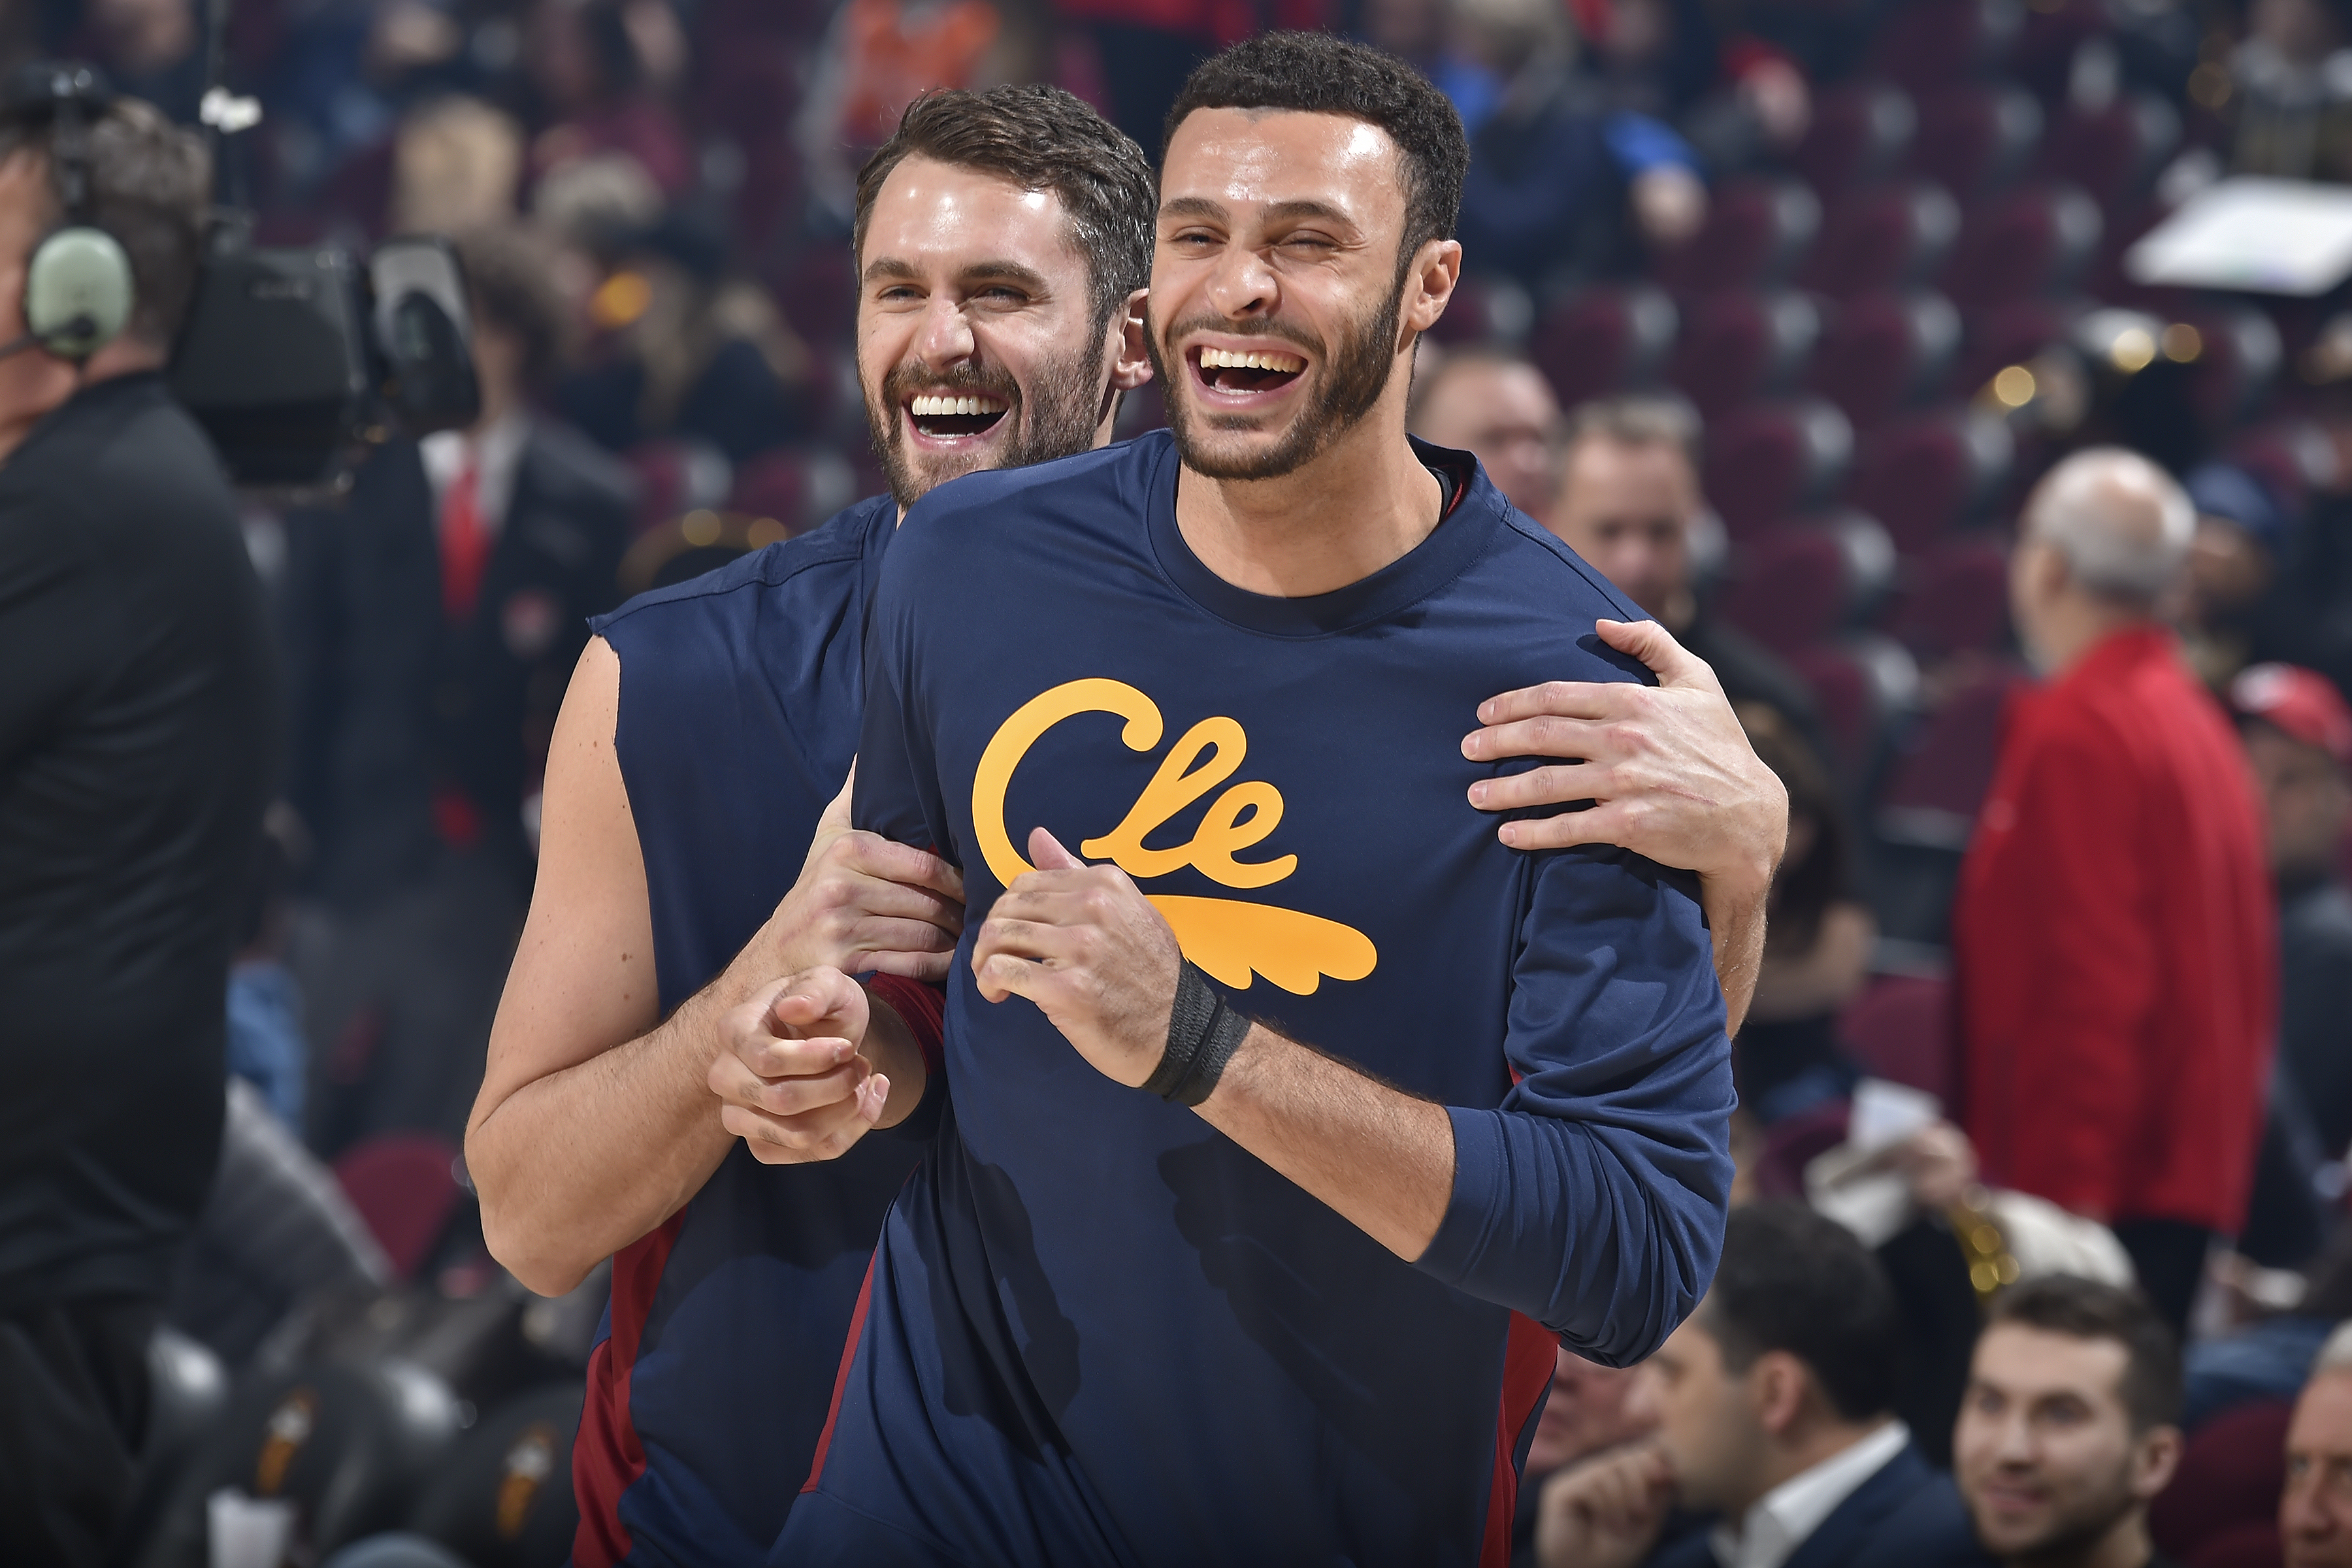 CLEVELAND, OH - NOVEMBER 27: Kevin Love #0 of the Cleveland Cavaliers and Larry Nance Jr. #22 of the Cleveland Cavaliers smile prior to a game against the Orlando Magic on November 27, 2019 at Quicken Loans Arena in Cleveland, Ohio. NOTE TO USER: User expressly acknowledges and agrees that, by downloading and/or using this Photograph, user is consenting to the terms and conditions of the Getty Images License Agreement. Mandatory Copyright Notice: Copyright 2019 NBAE